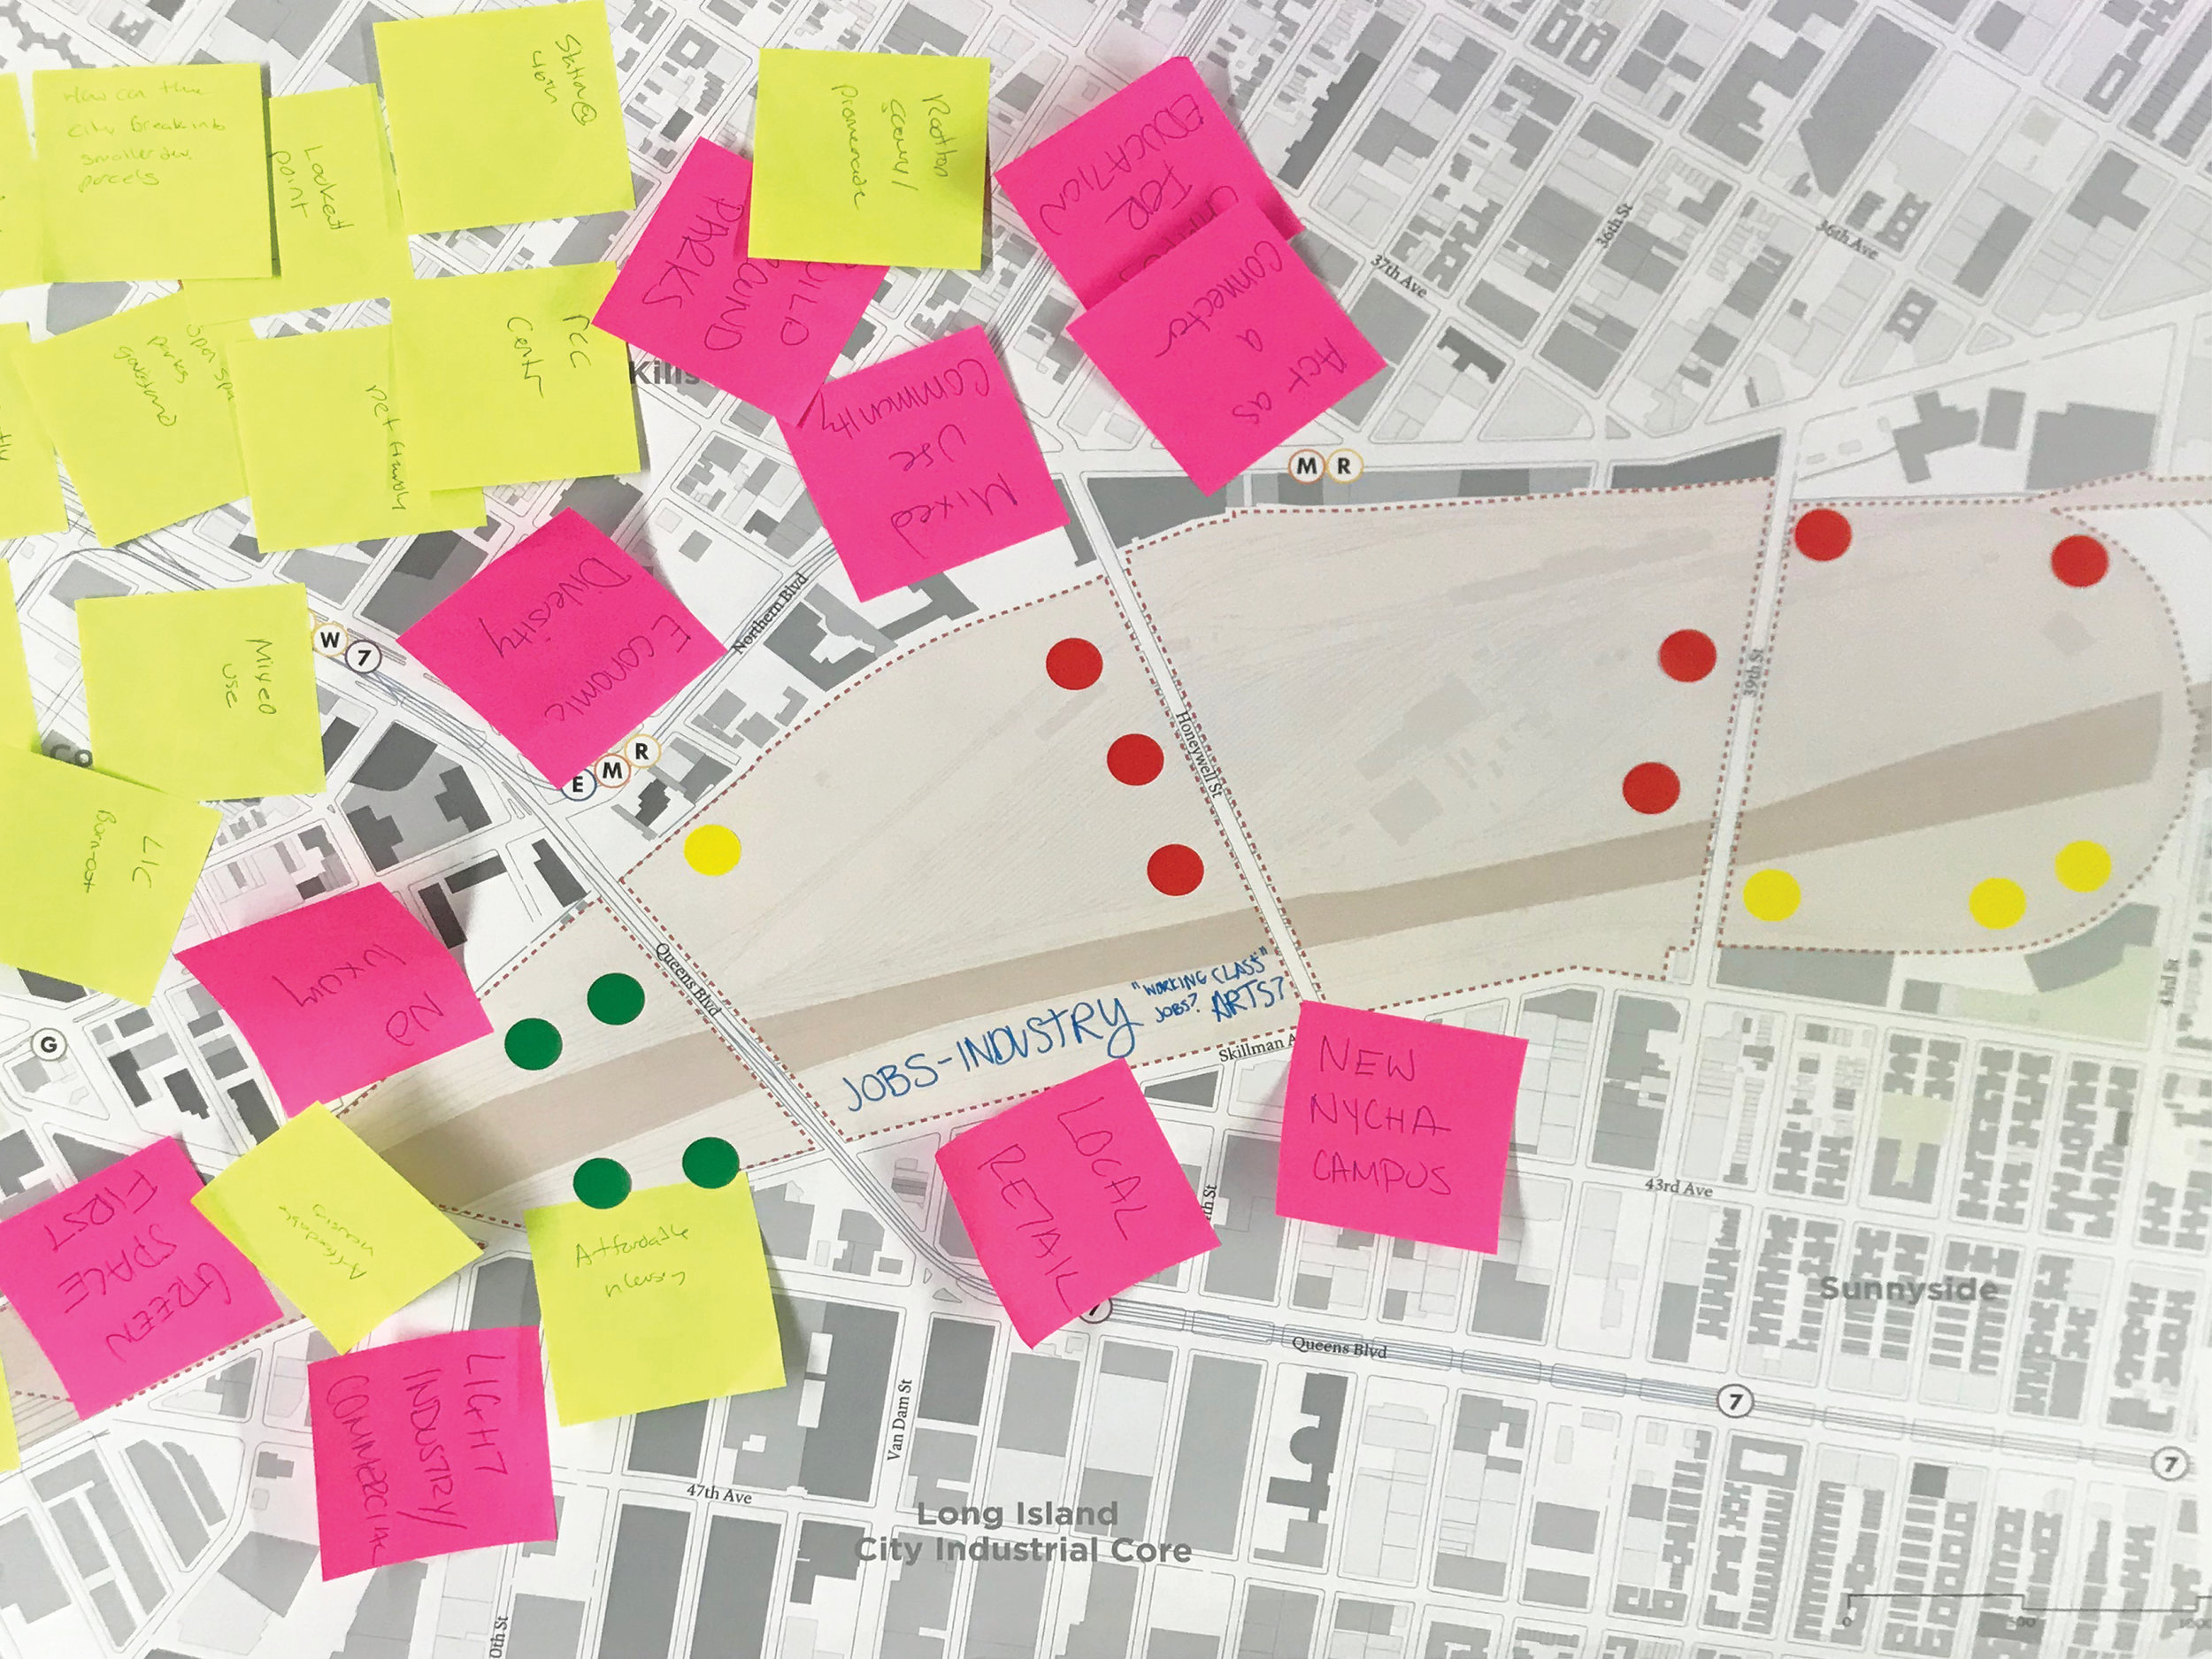 SSY_Public Workshop Findings Summary Urban Design Map.jpg